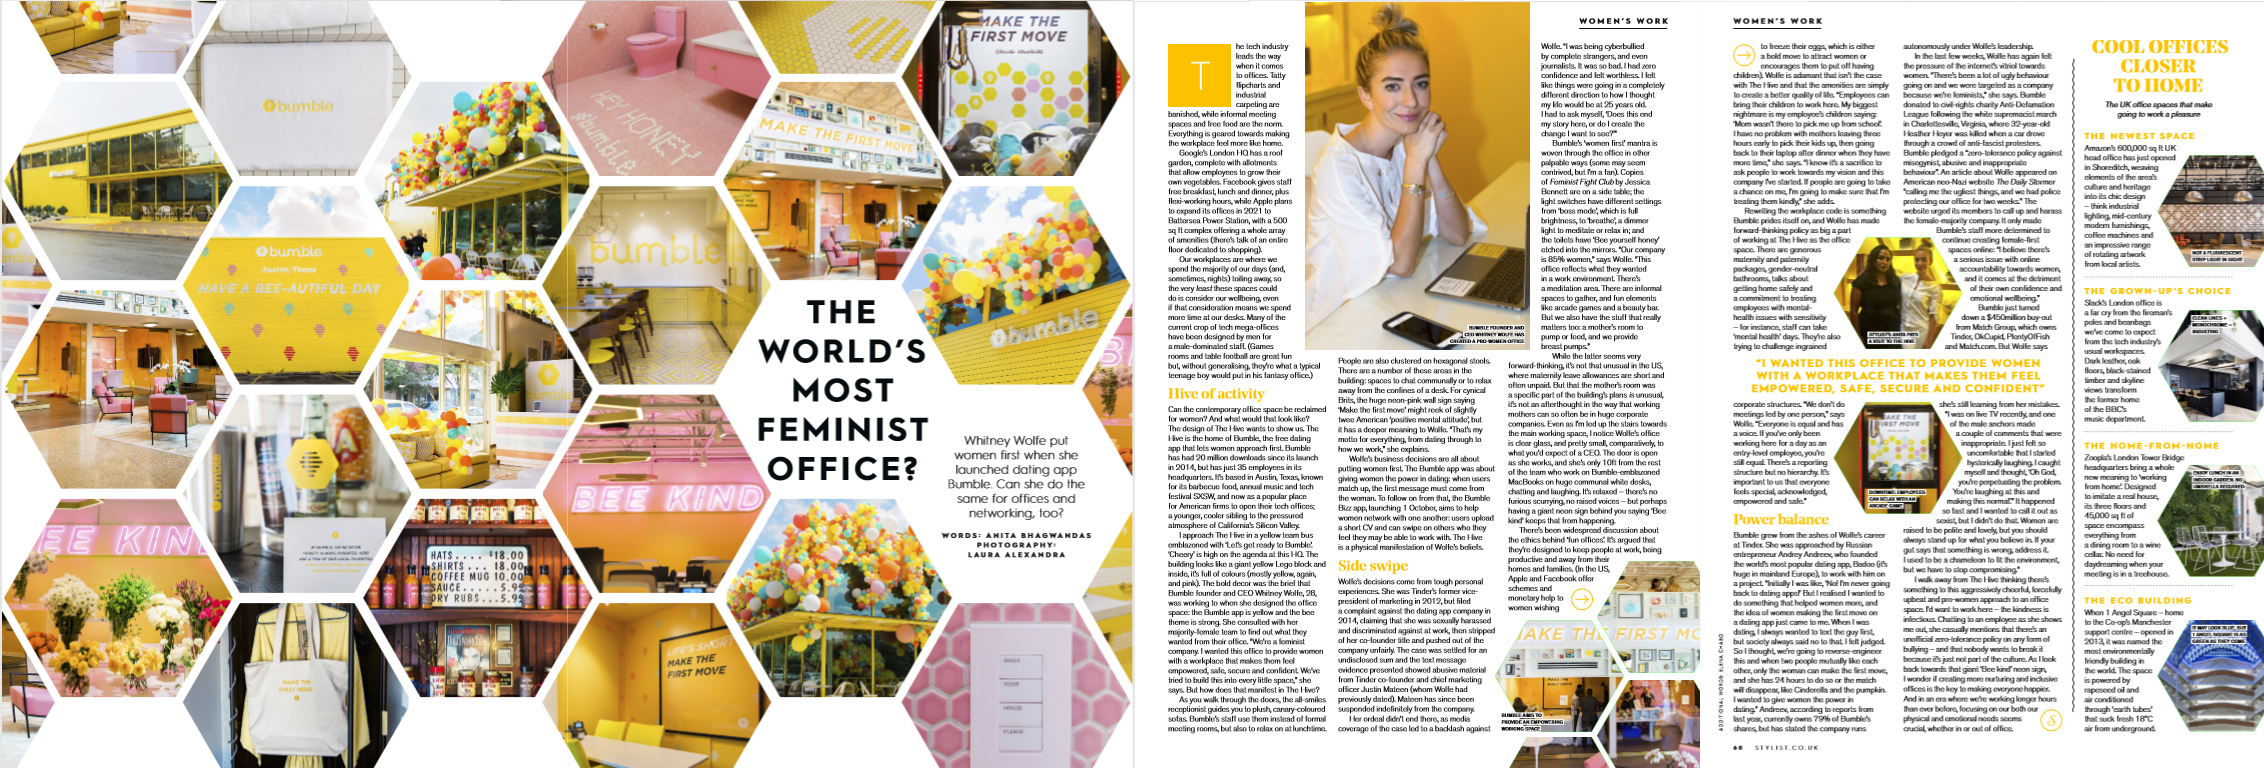 STYLIST - INTERVIEW WHITNEY WOLFE, CEO BUMBLE